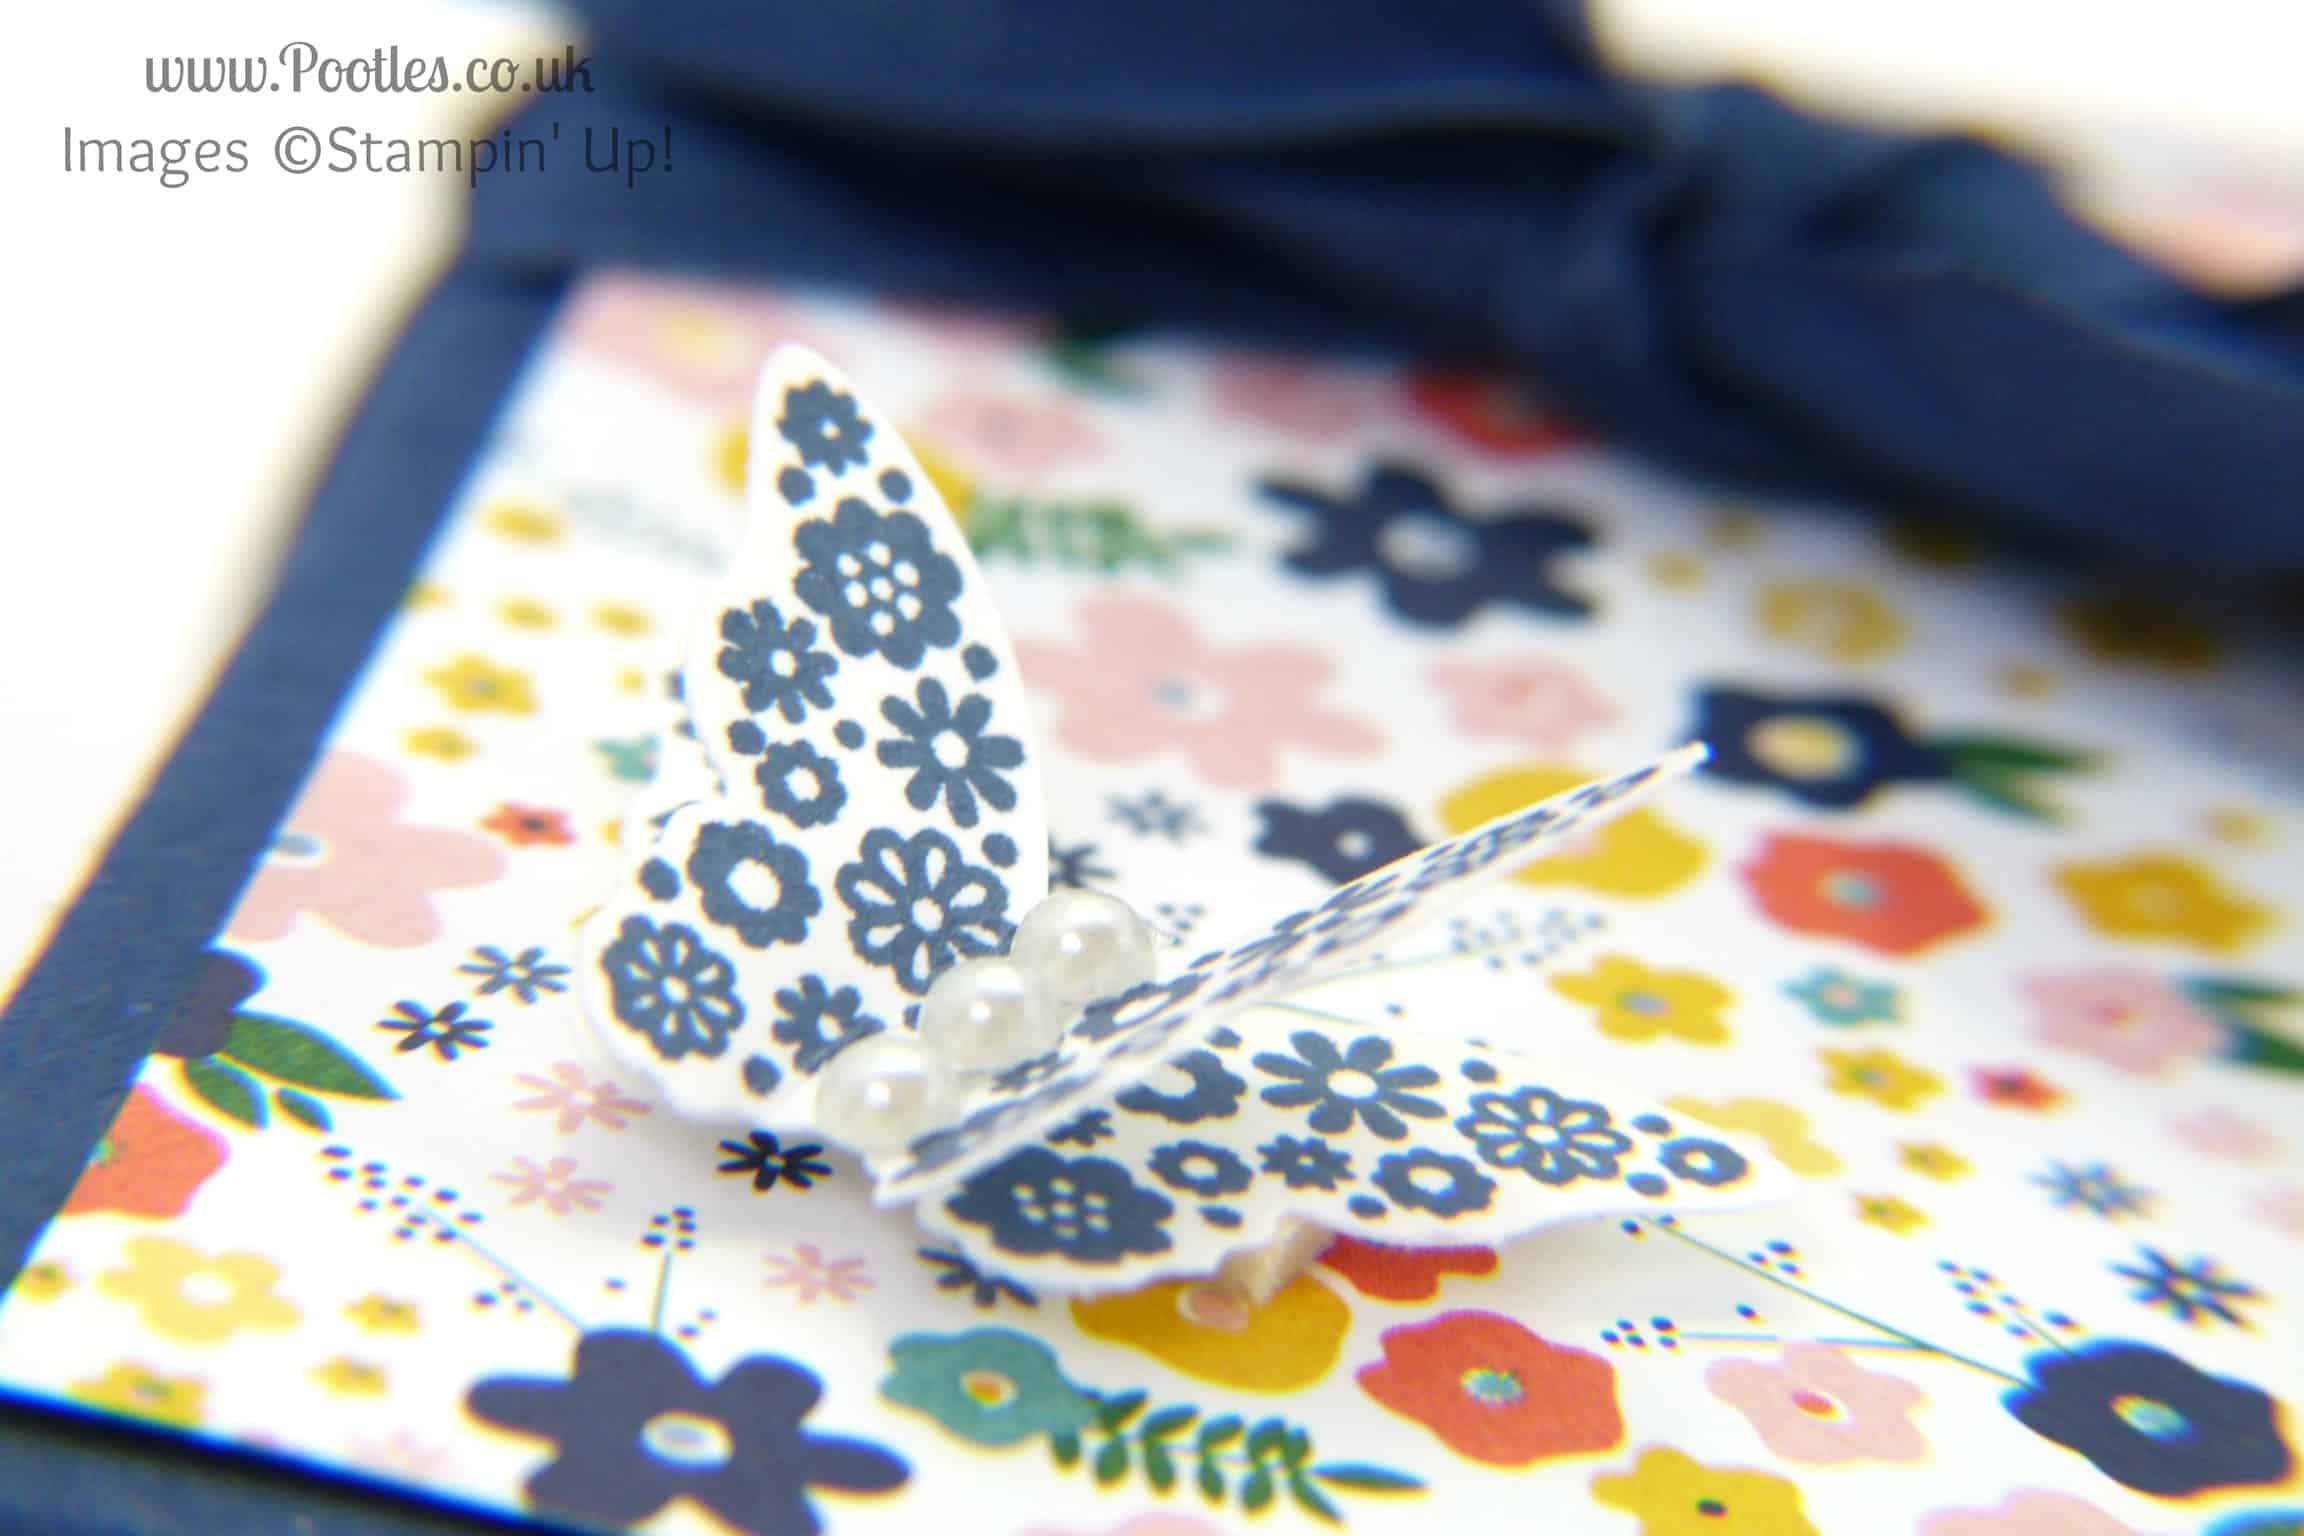 Stampin' Up! UK Demonstrator Pootles - 3 2 1 Box Tutorial using Stampin' Up Supplies butterfly detail